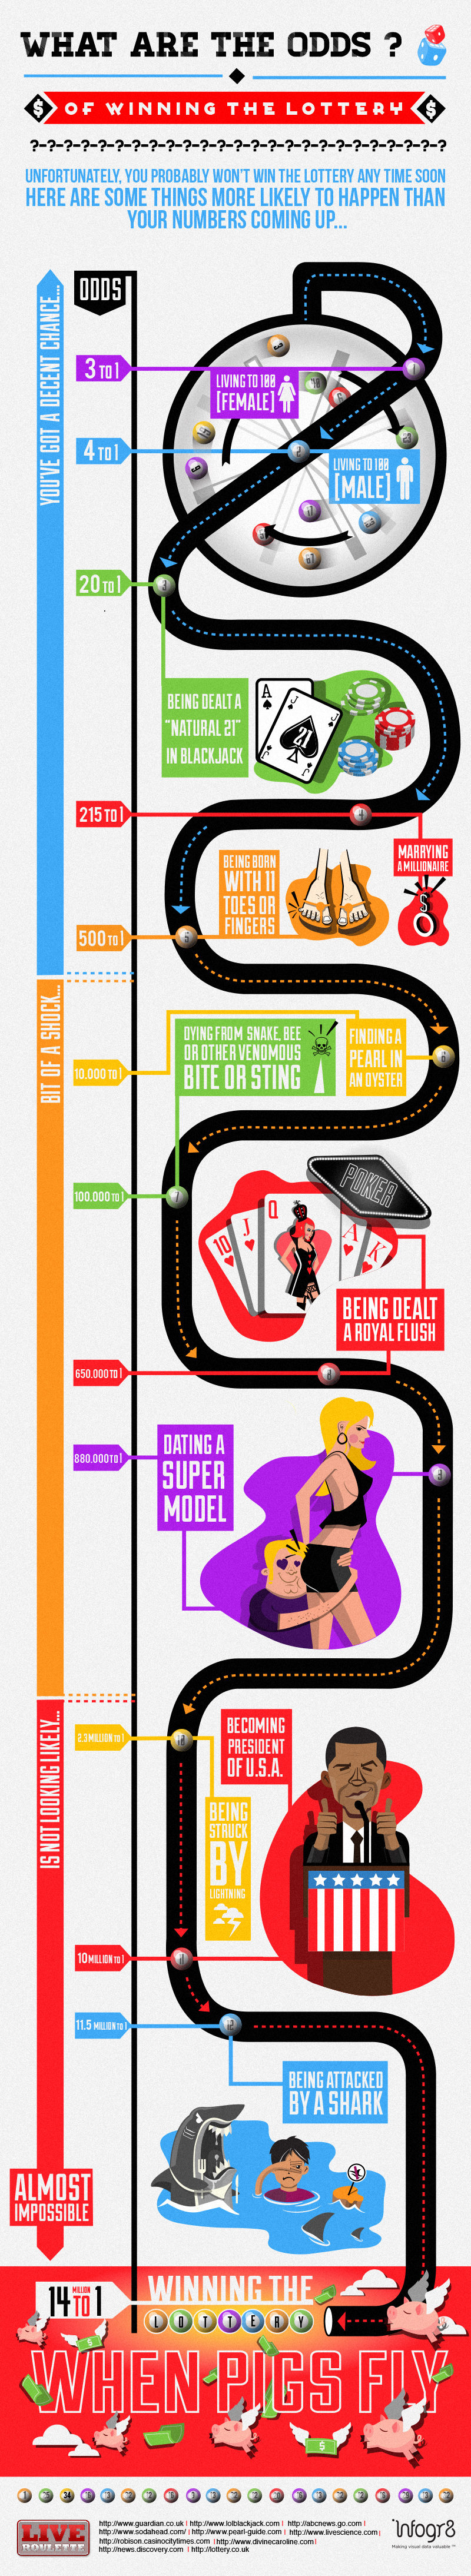 what-are-the-odds-lottery-infographic